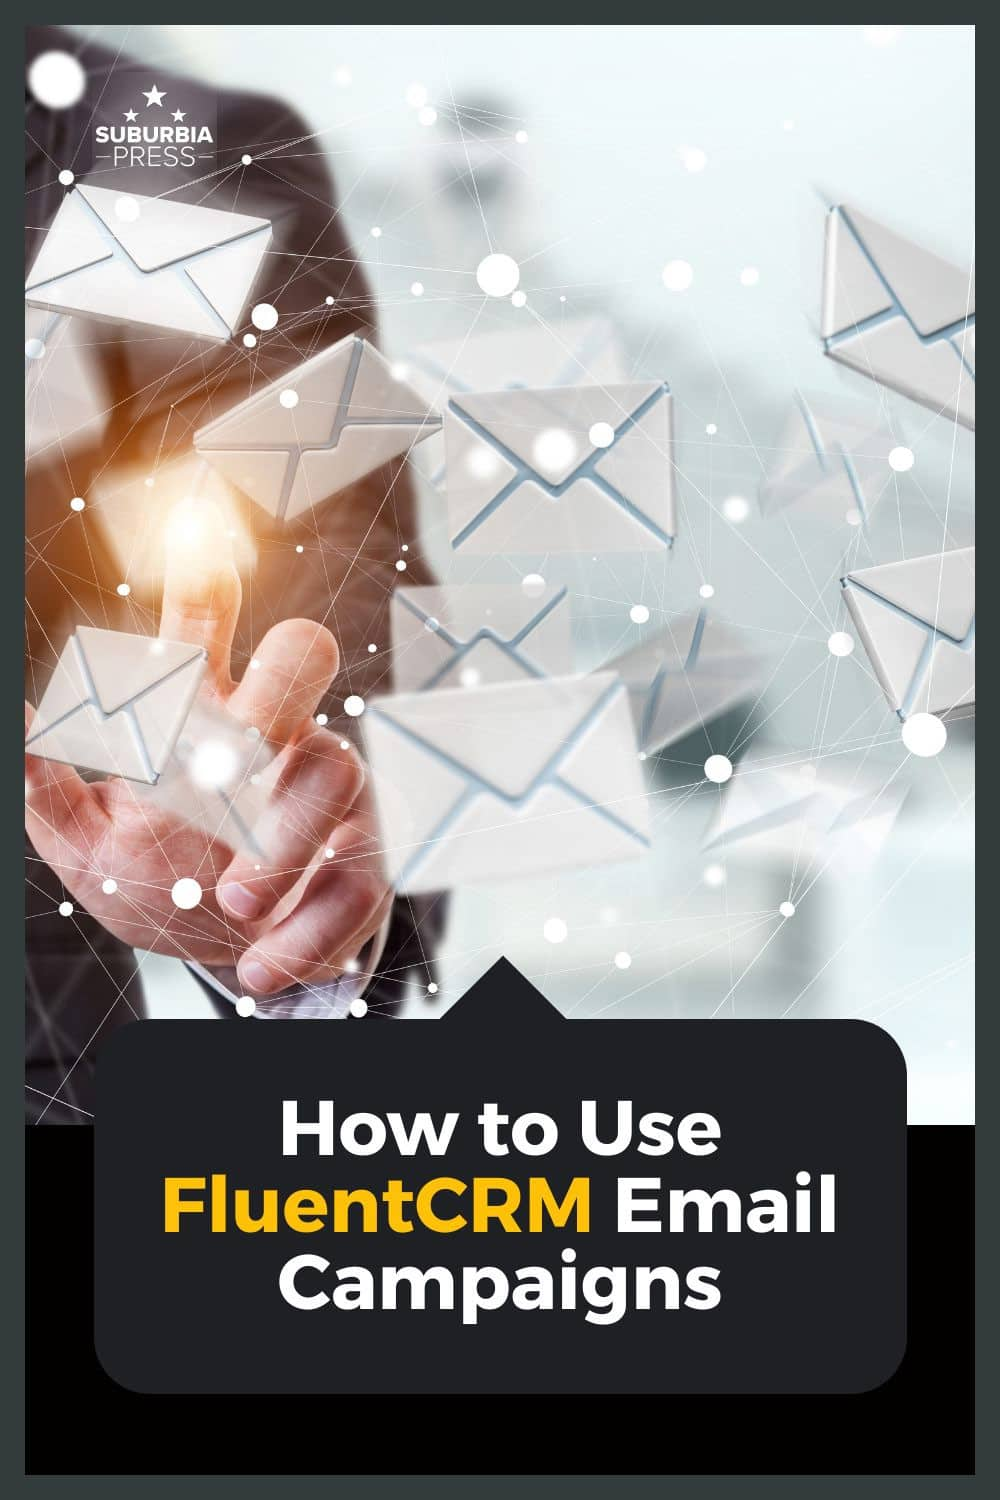 FluentCRM Email Campaigns: The Heart of Community